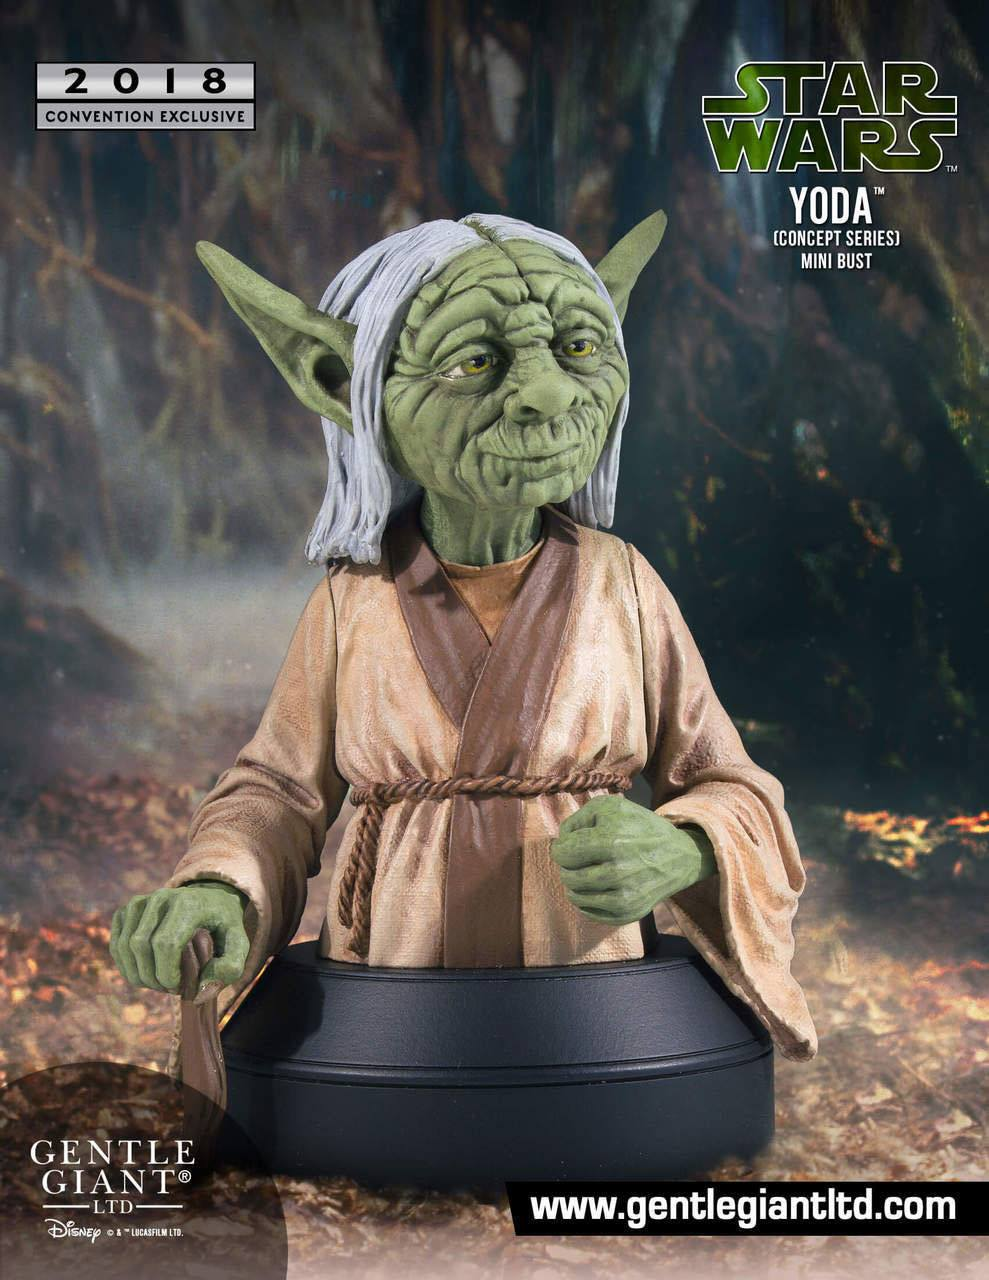 Yoda Concept Series SDCC 2018 Exclusive Star Wars 1/6 Scale Bust by Gentle Giant